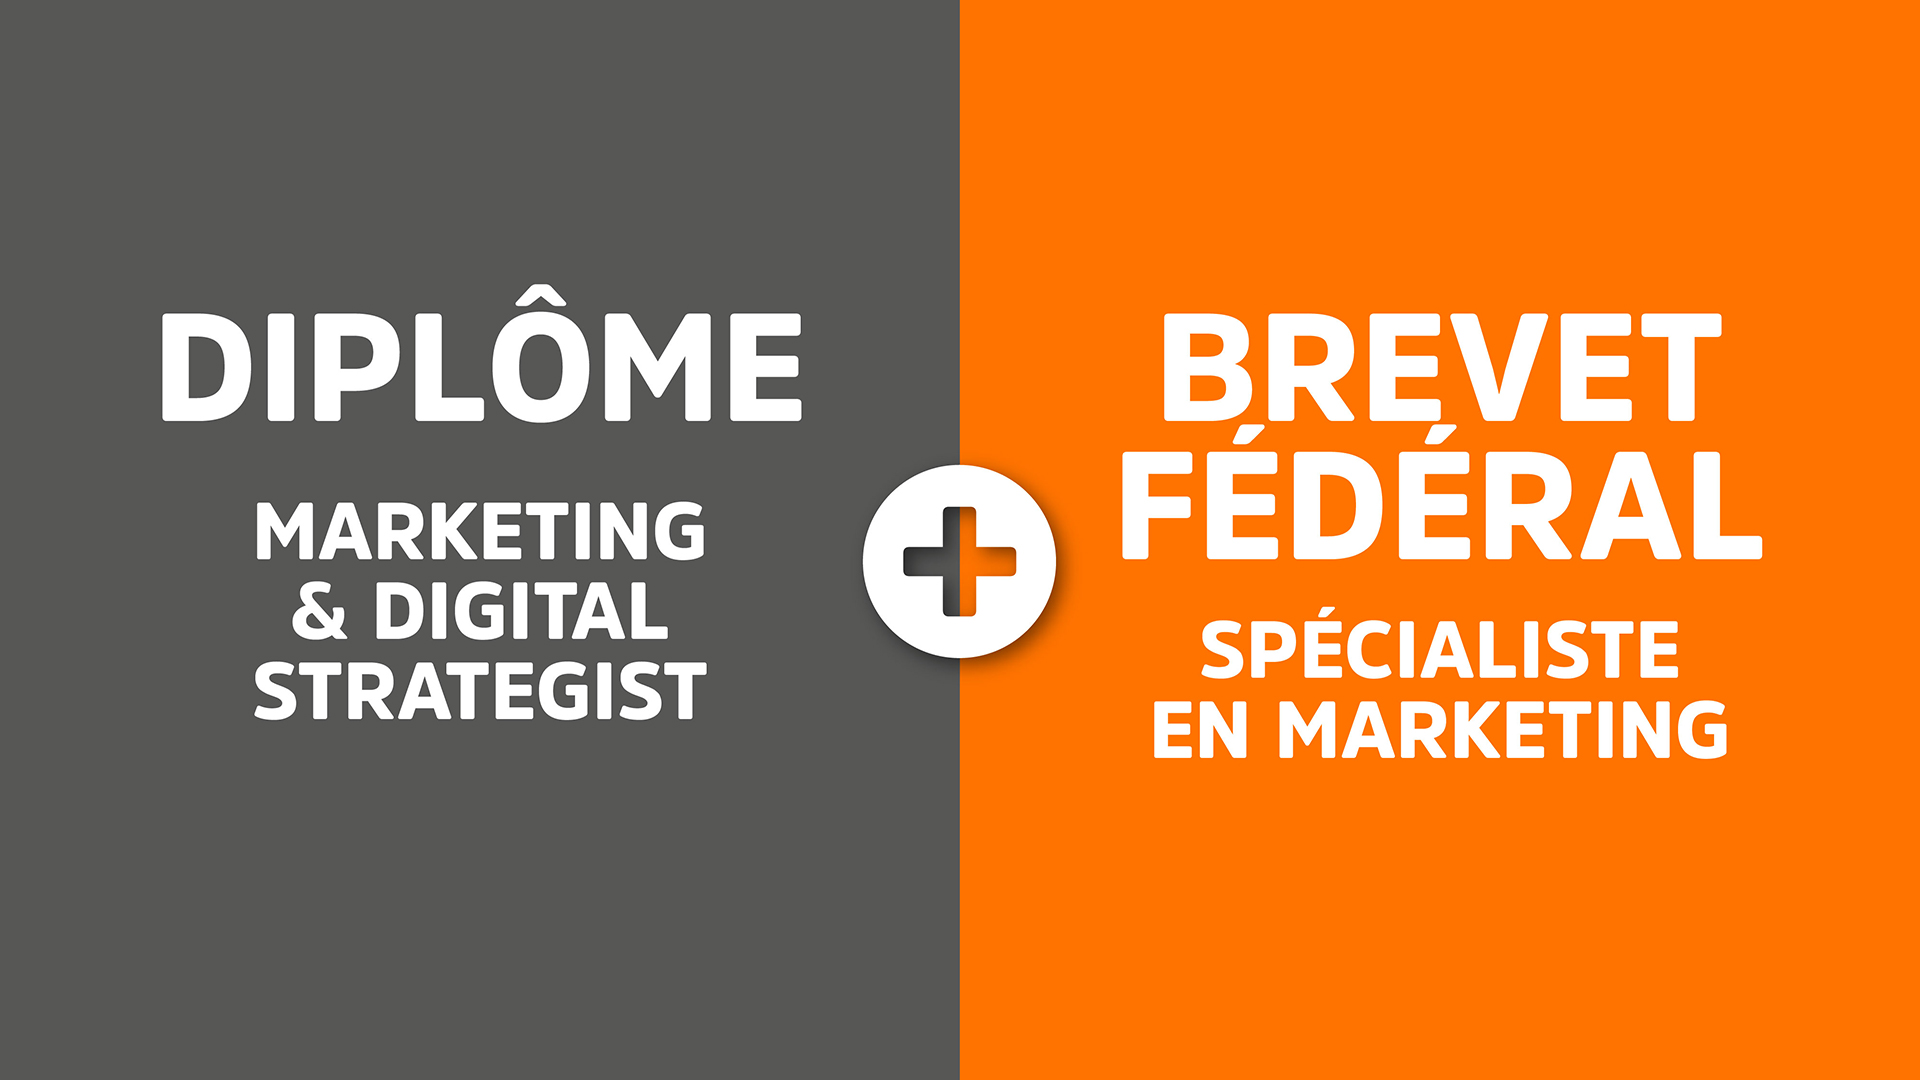 brevet-federal-specialiste-marketing